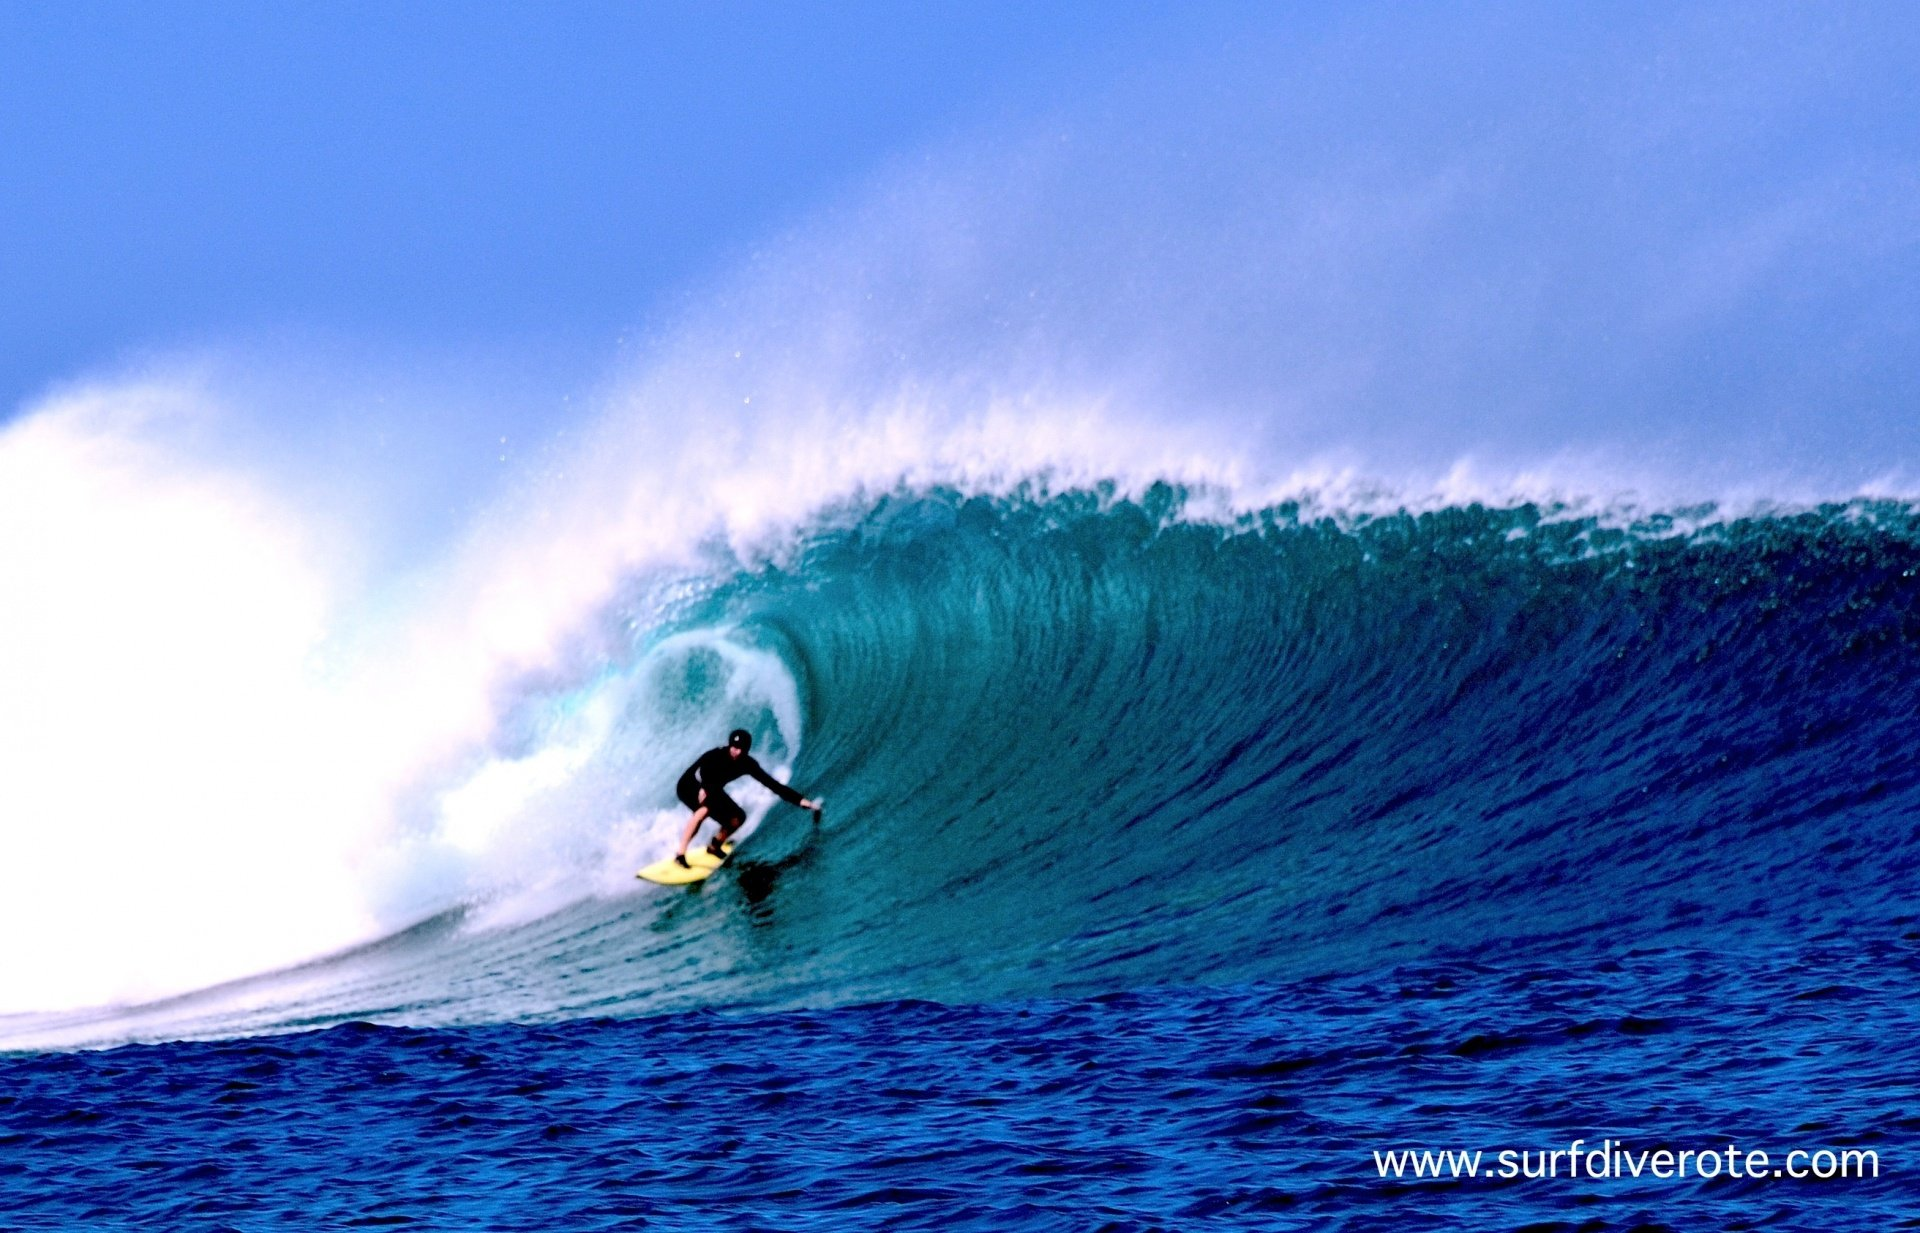 Anugerah Surf & Dive Resort's photo of T-Land